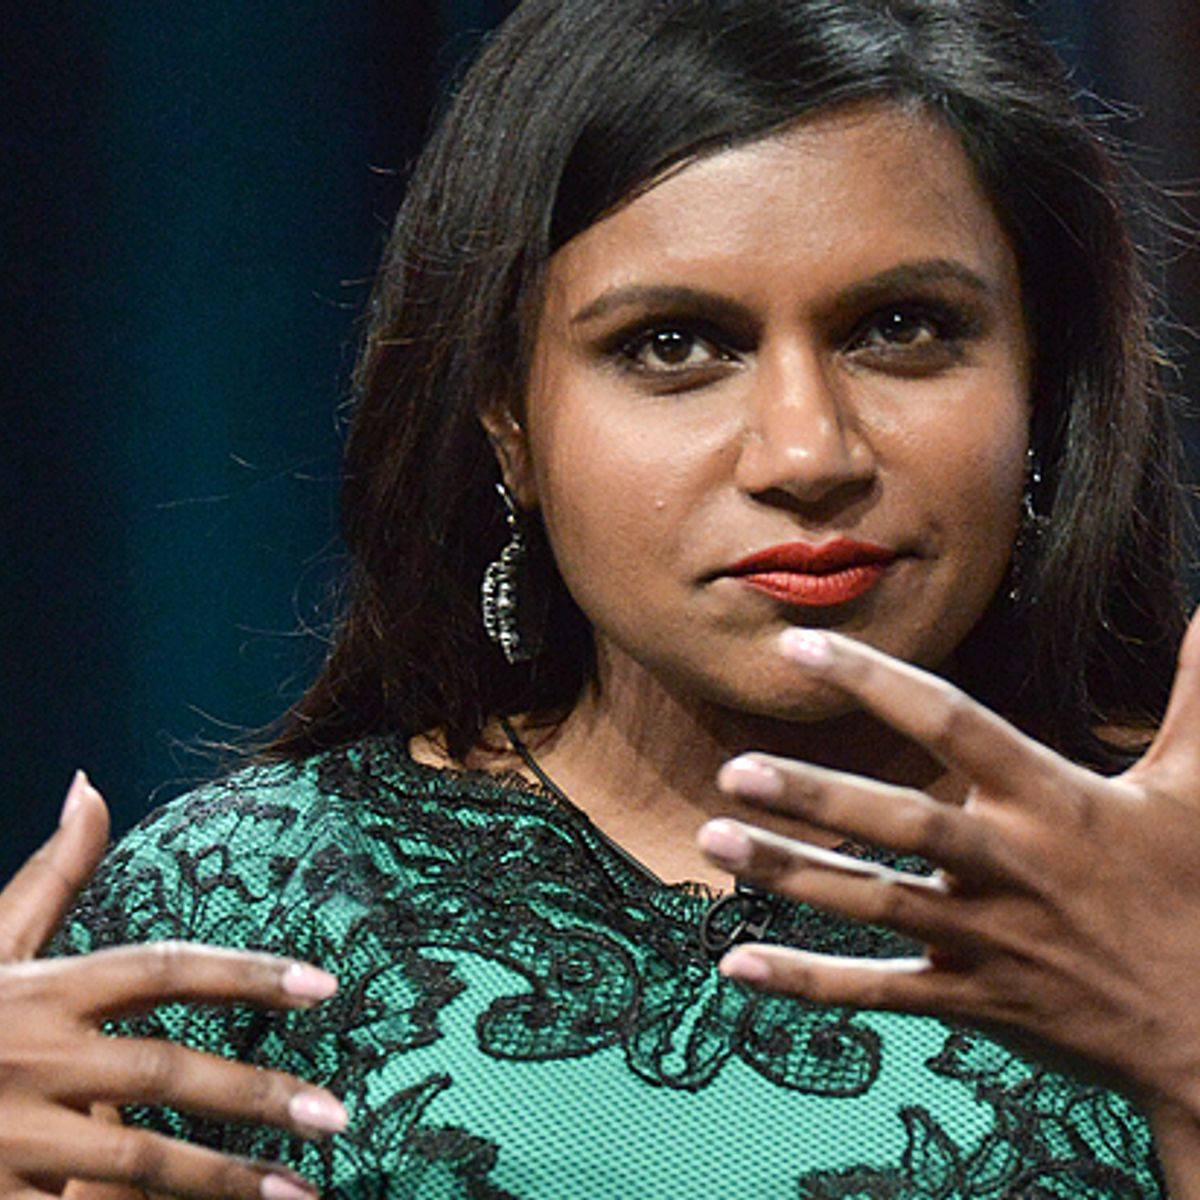 Mindy Kaling S Brother S Lousy Almost Black Stunt Completely Misses The Point On Affirmative Action And Merit Salon Com